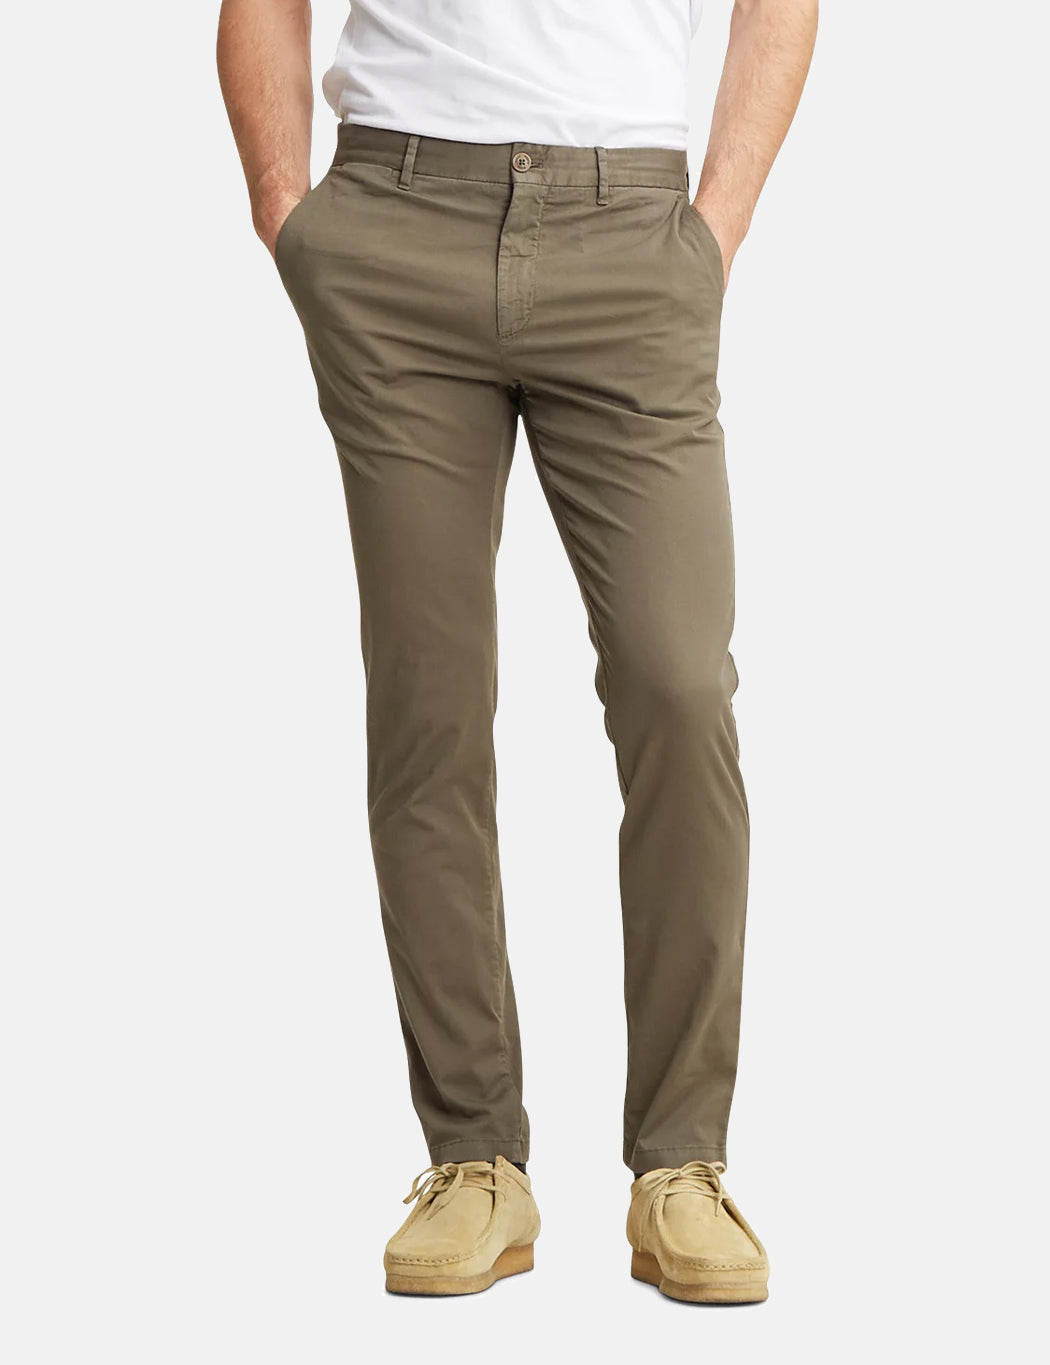 e3f3cd6615 Norse Projects Aros Stretch Chino (Slim) - Ivy Green   URBAN EXCESS.